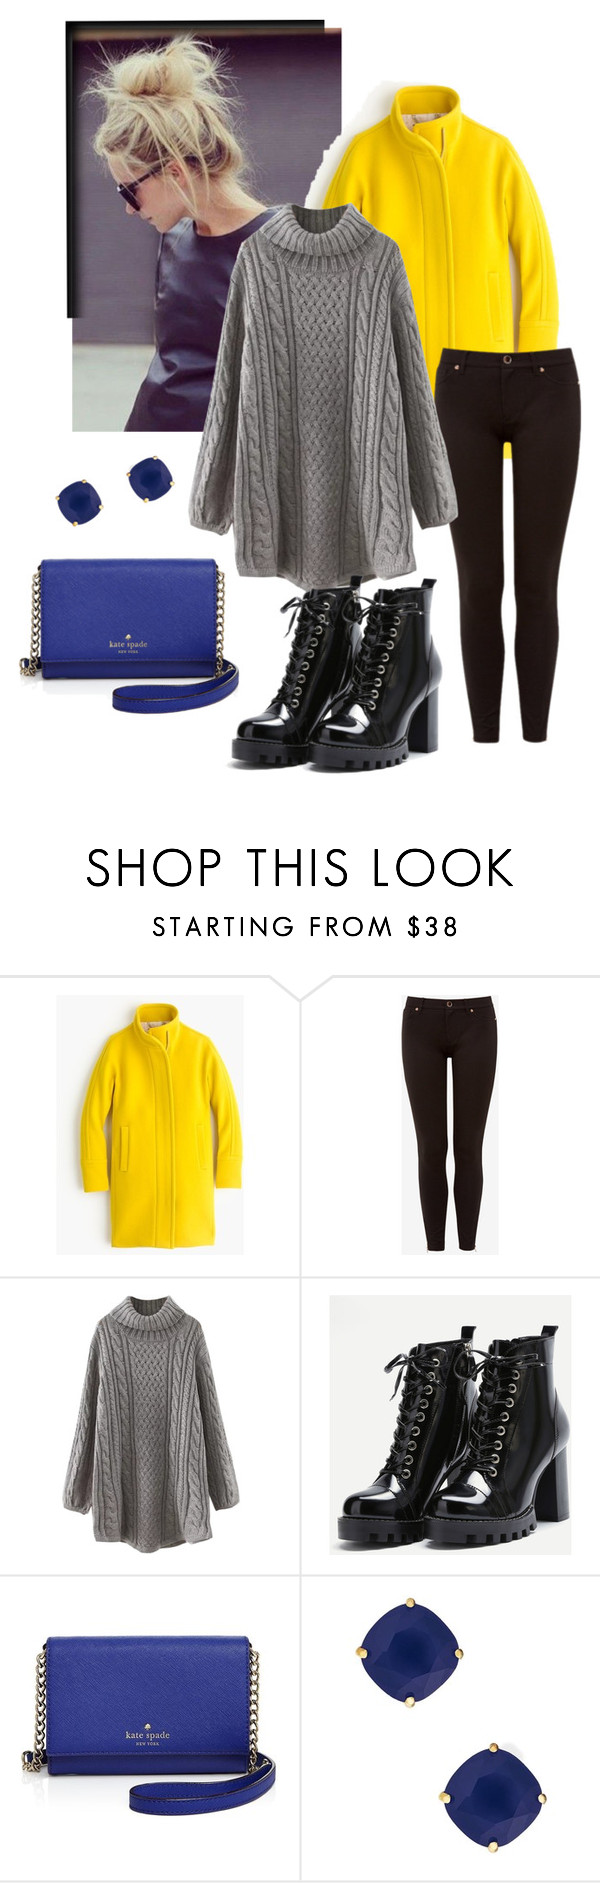 """Untitled #161"" by mia-s2 on Polyvore featuring J.Crew, Ted Baker, WithChic and Kate Spade"